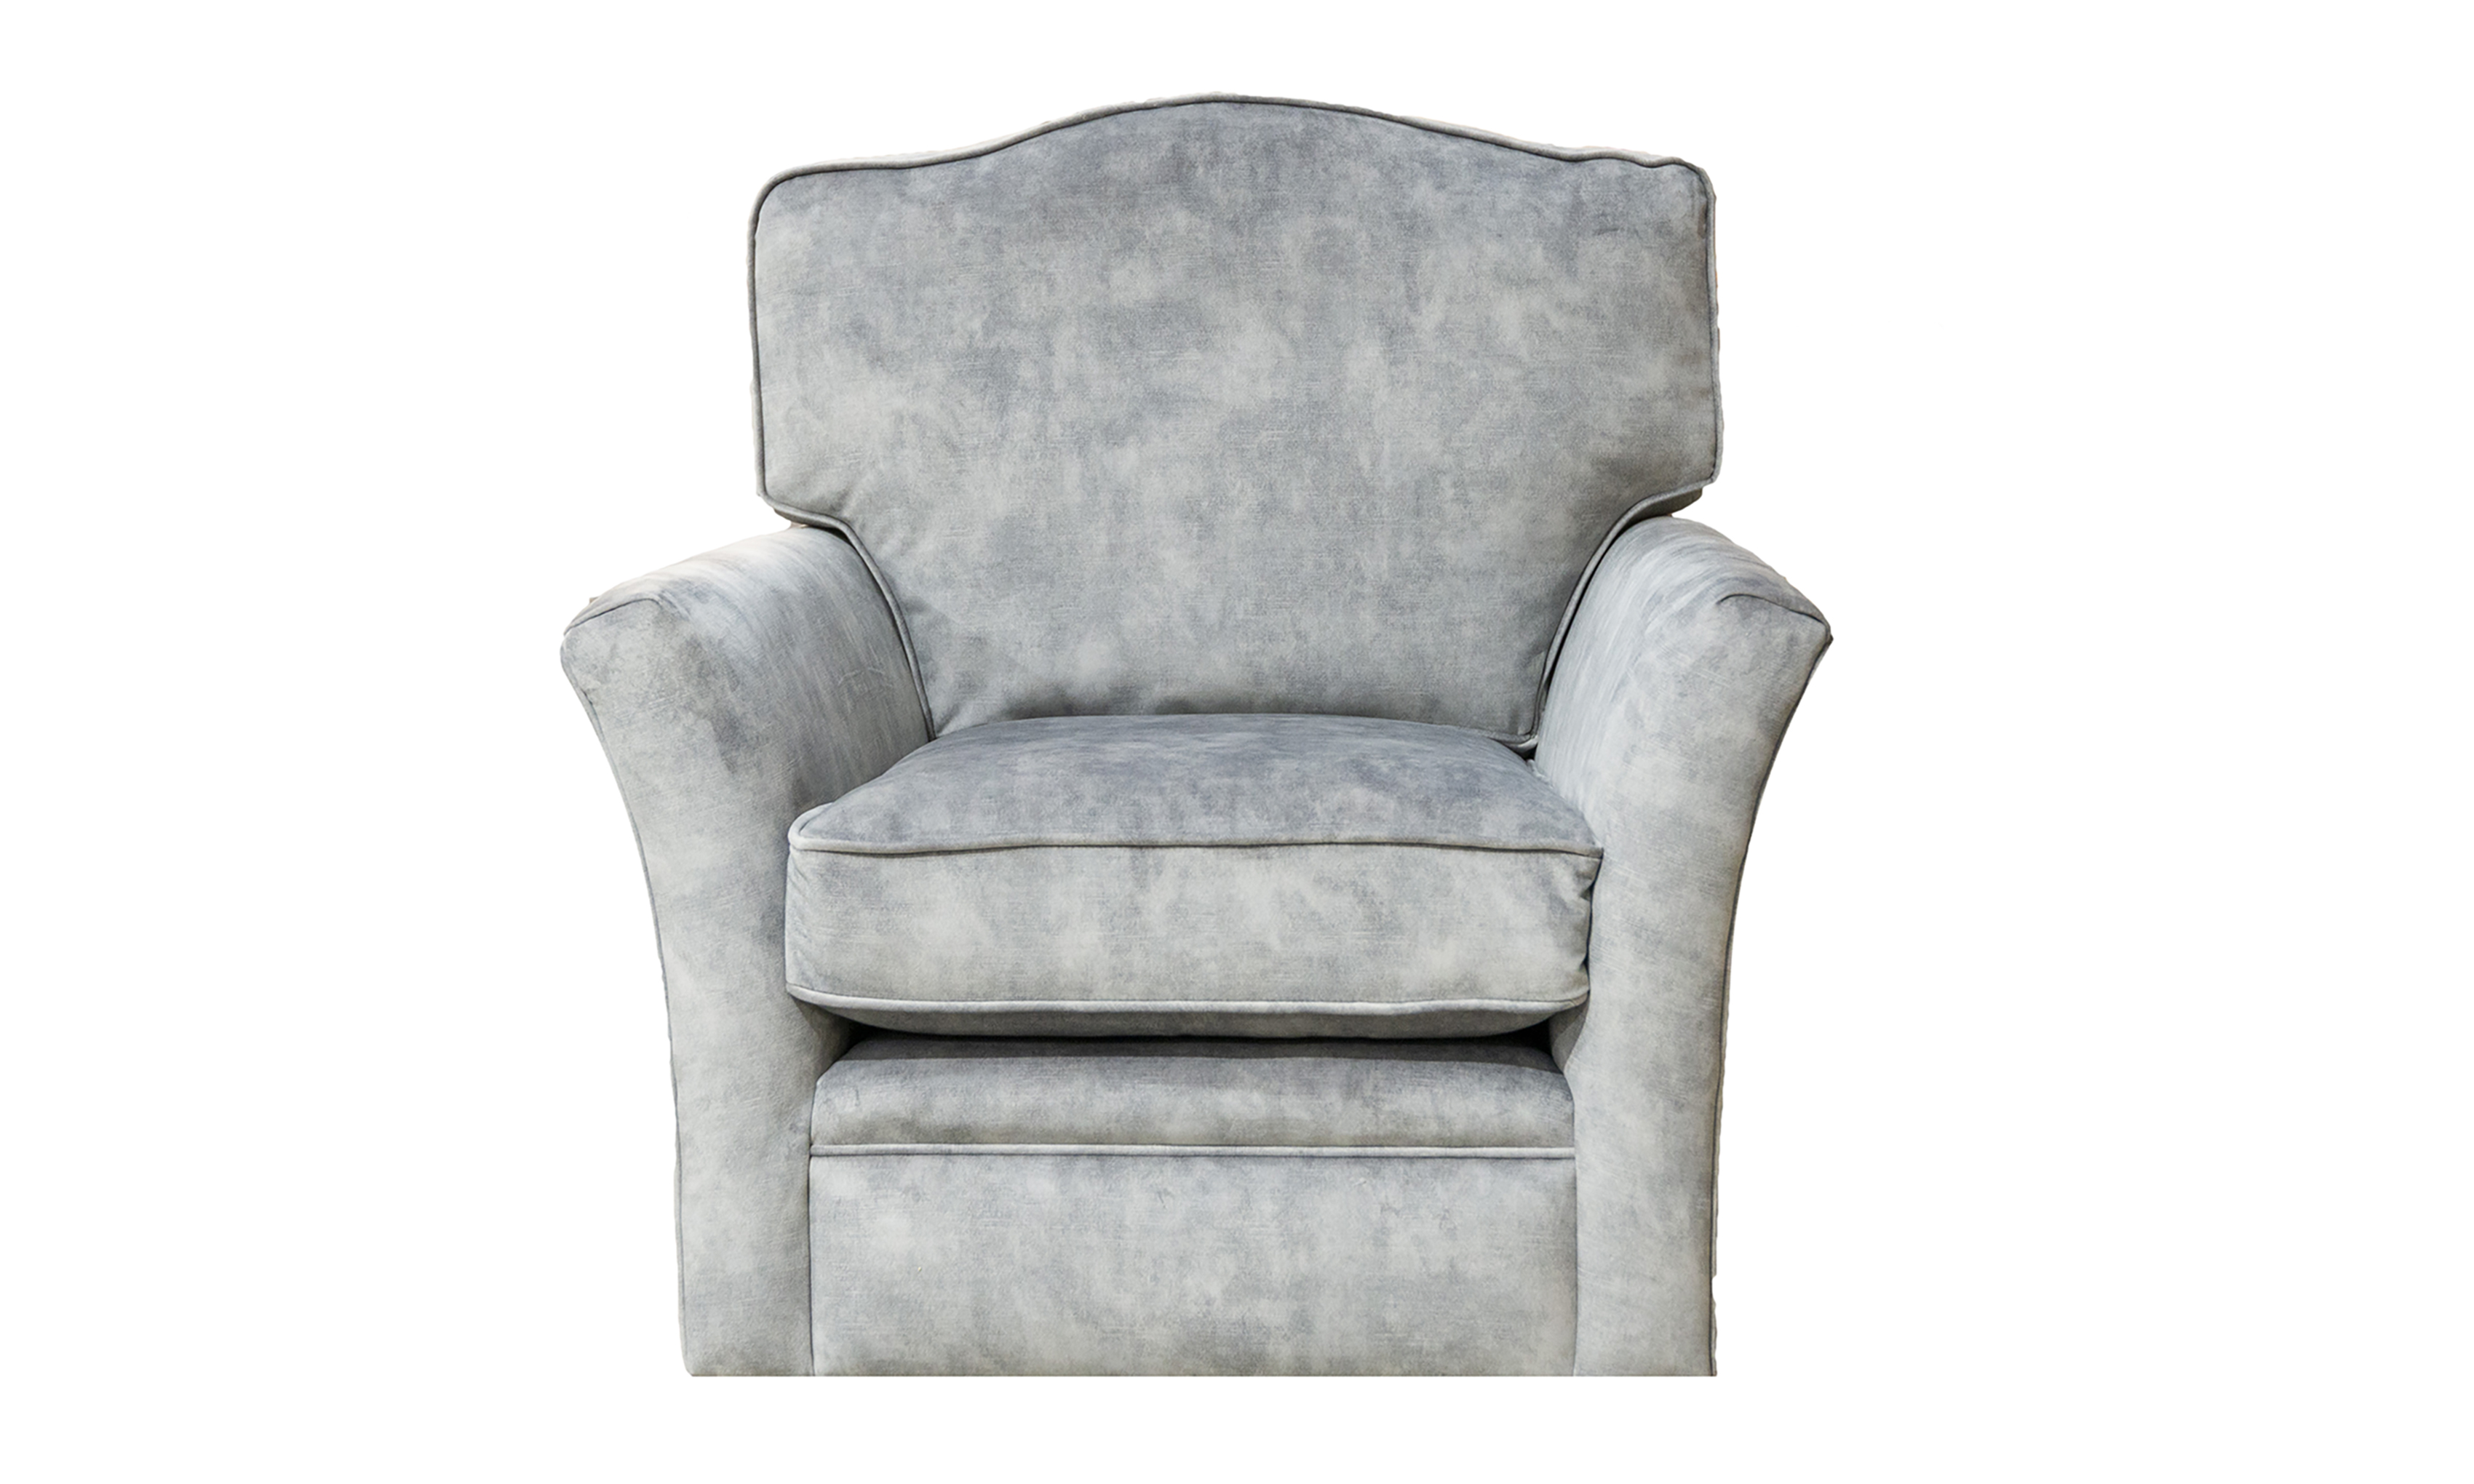 Othello Swivel Chair in Lovely Cement, Gold Collection Fabric